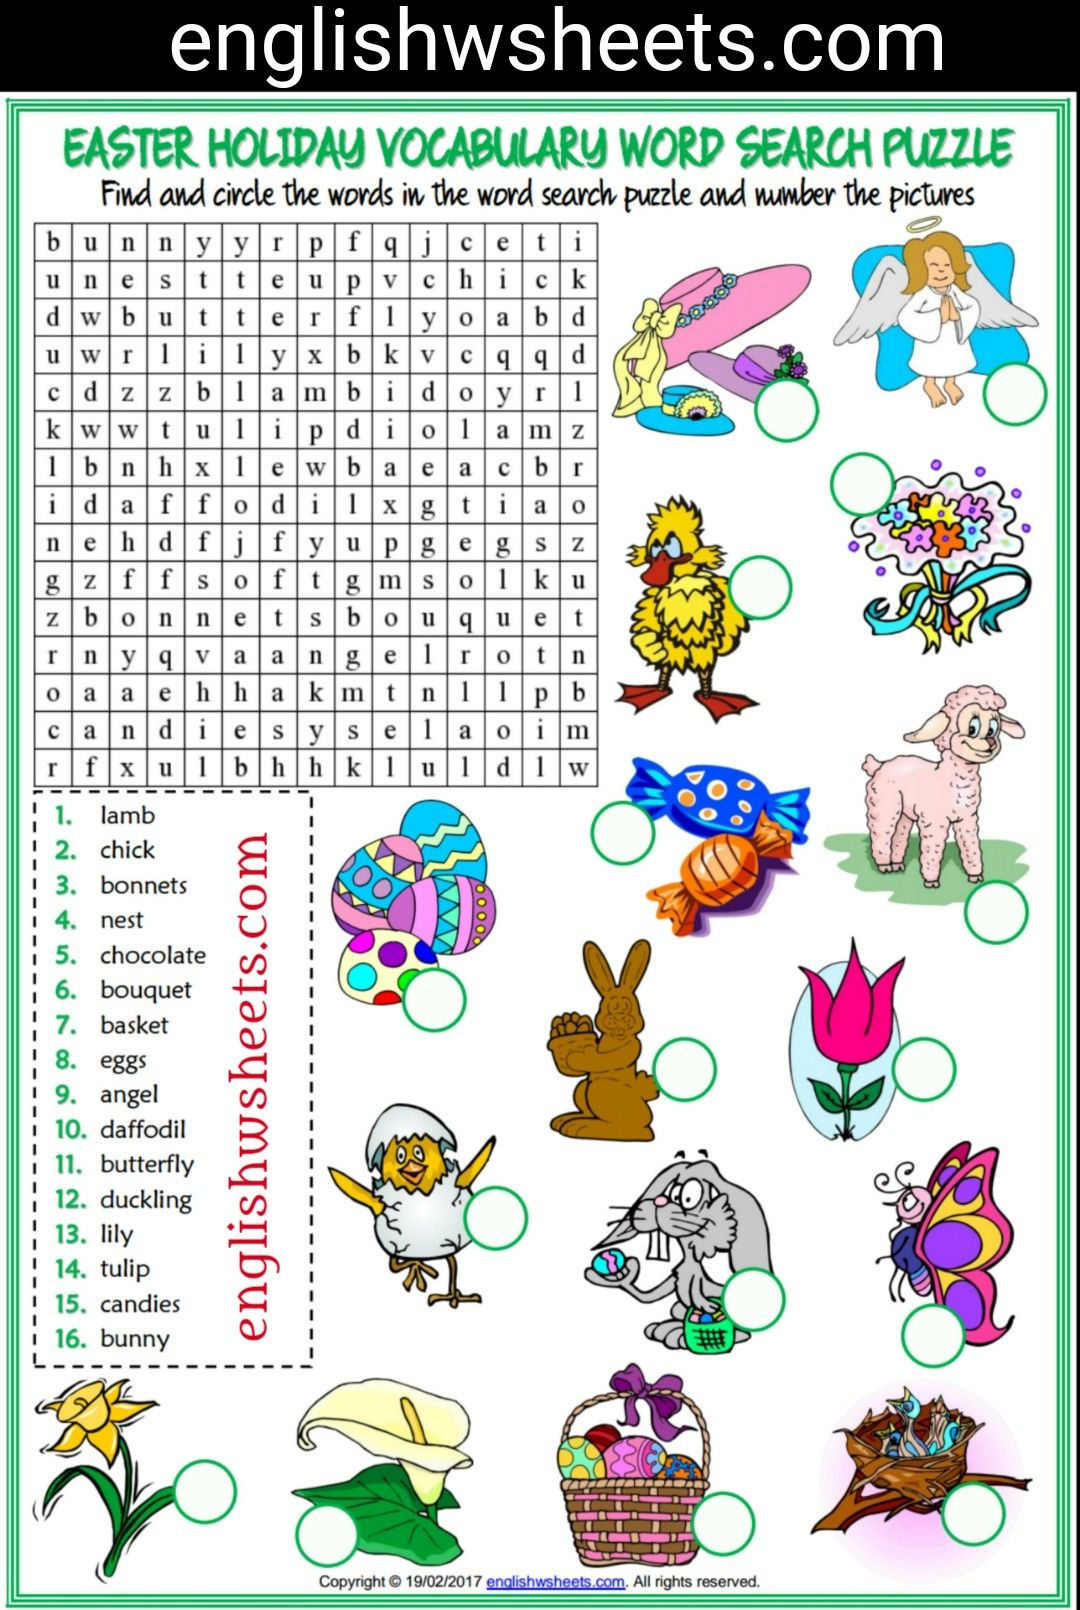 Easter Esl Printable Word Search Puzzle Worksheet For Kids Easter Esl Printable Word Search